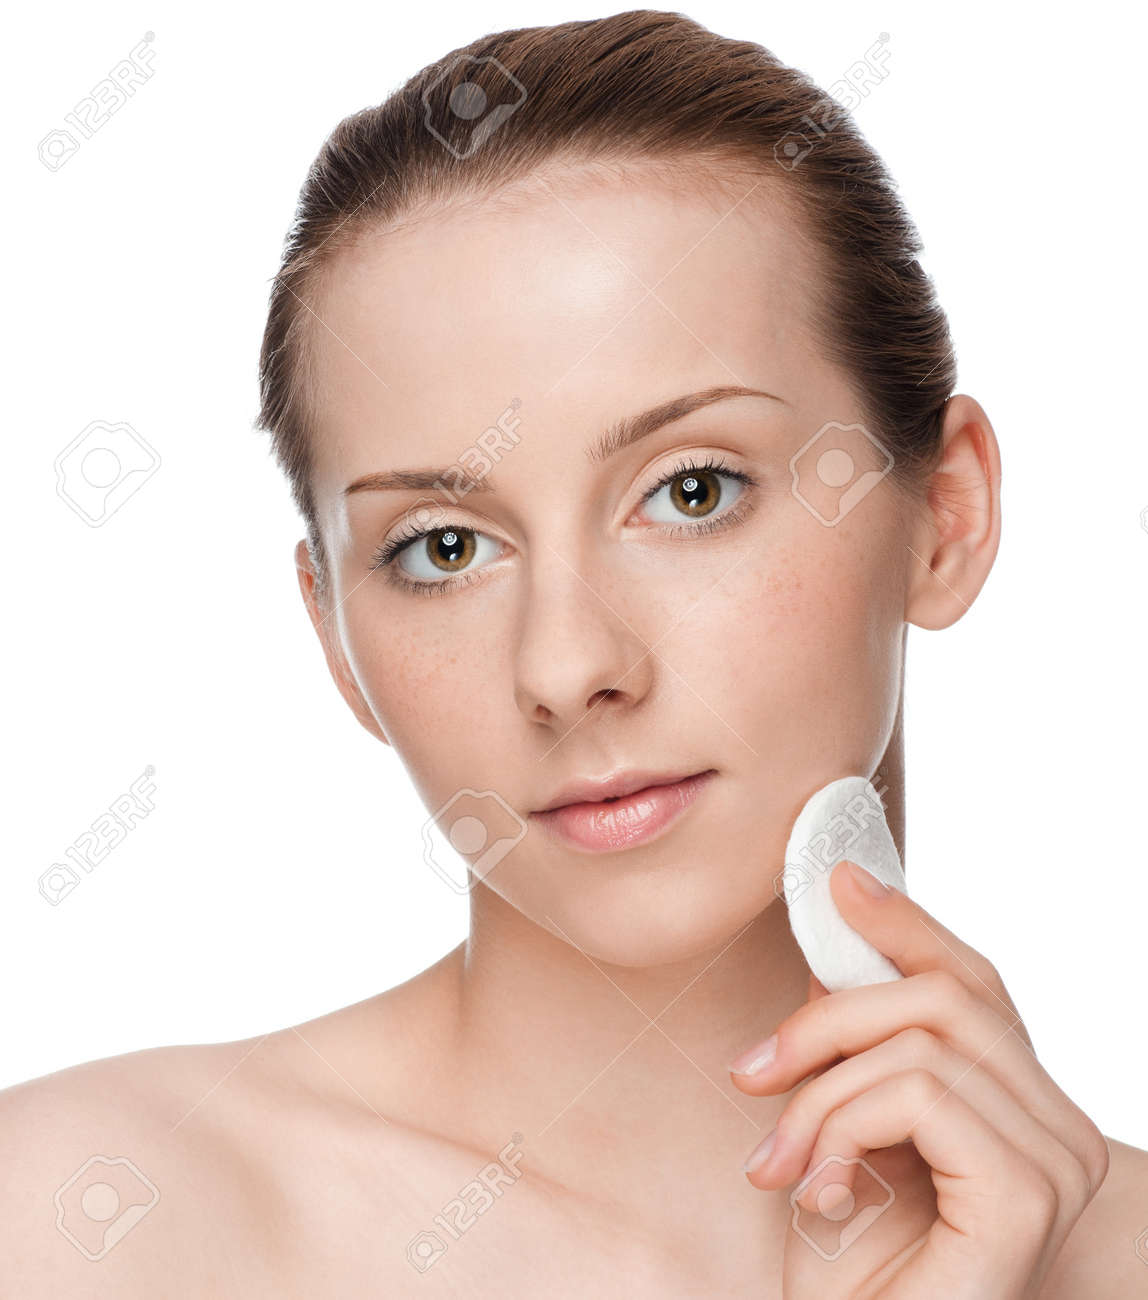 Closeup portrait of young beautiful woman with perfect skin. Applying clean sponge. Isolated Stock Photo - 9839032